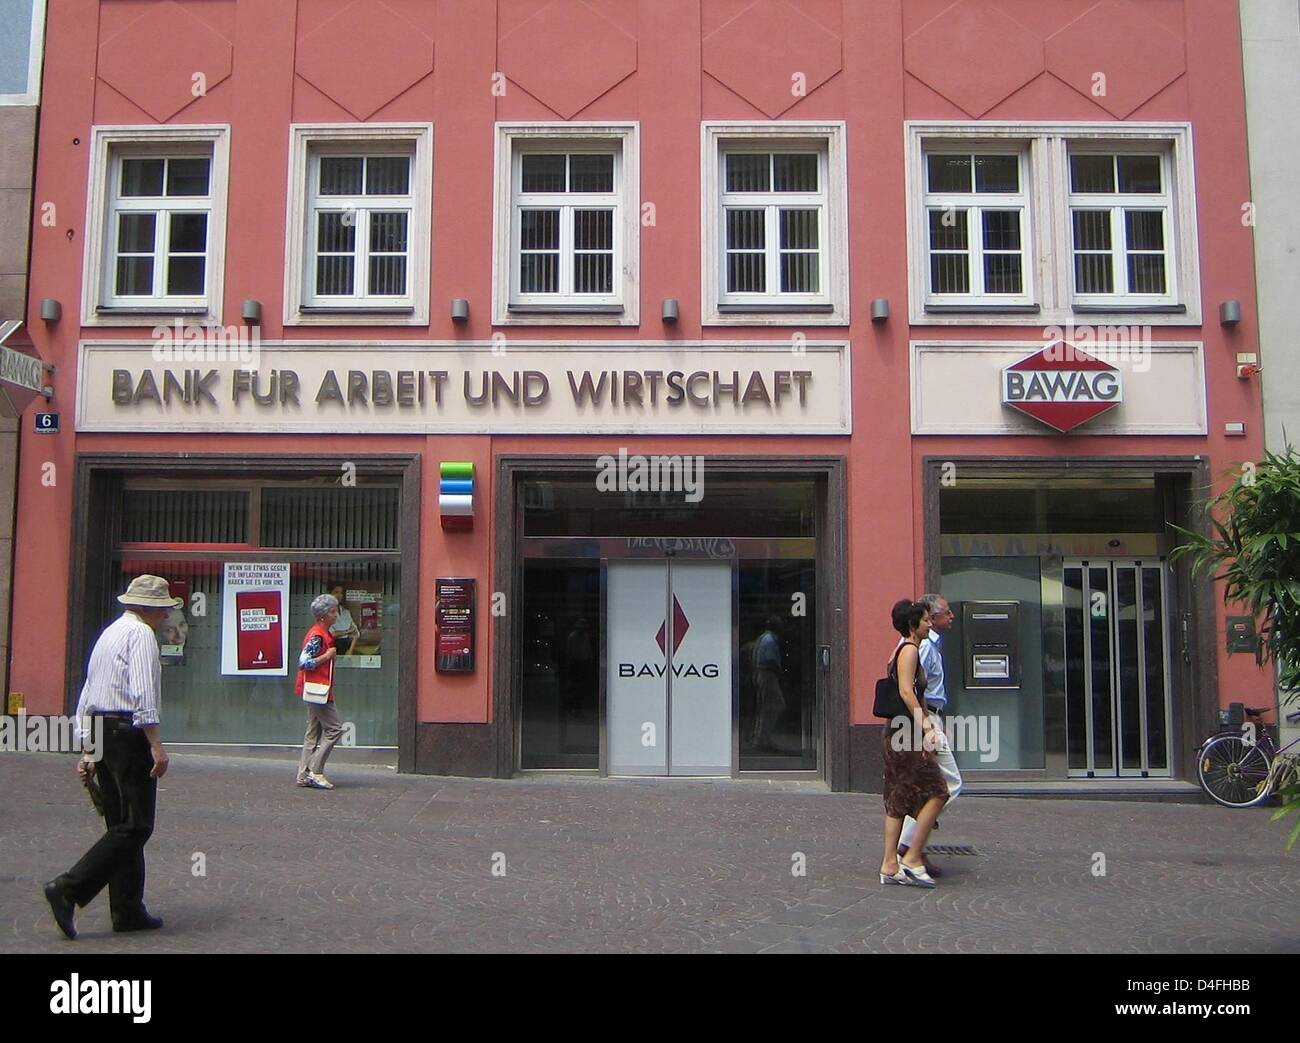 A branch of Austrian bank BAWAG (Bank fuer Arbeit und Wirtschaft) ('Bank for Work and Economy') seen in - Stock Image